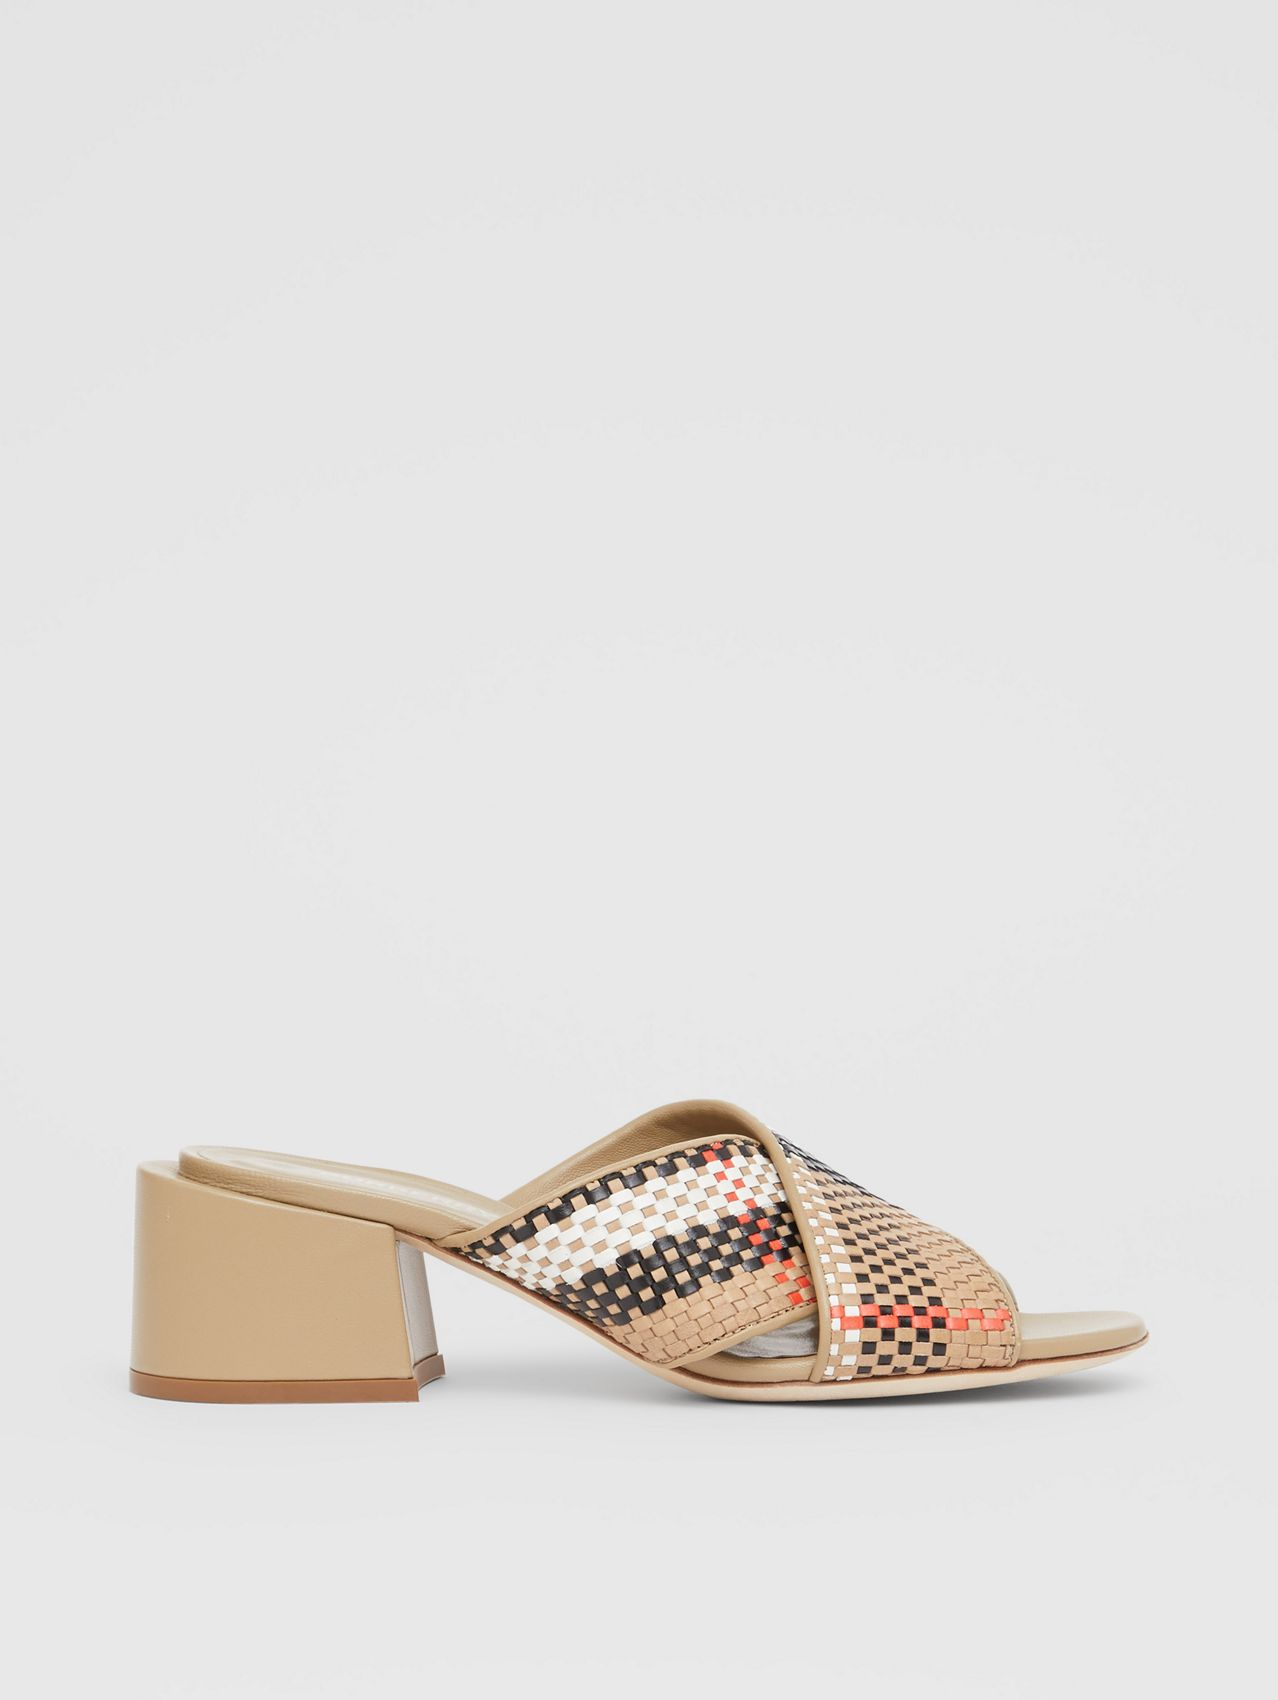 Latticed Leather Block-heel Sandals in Archive Beige